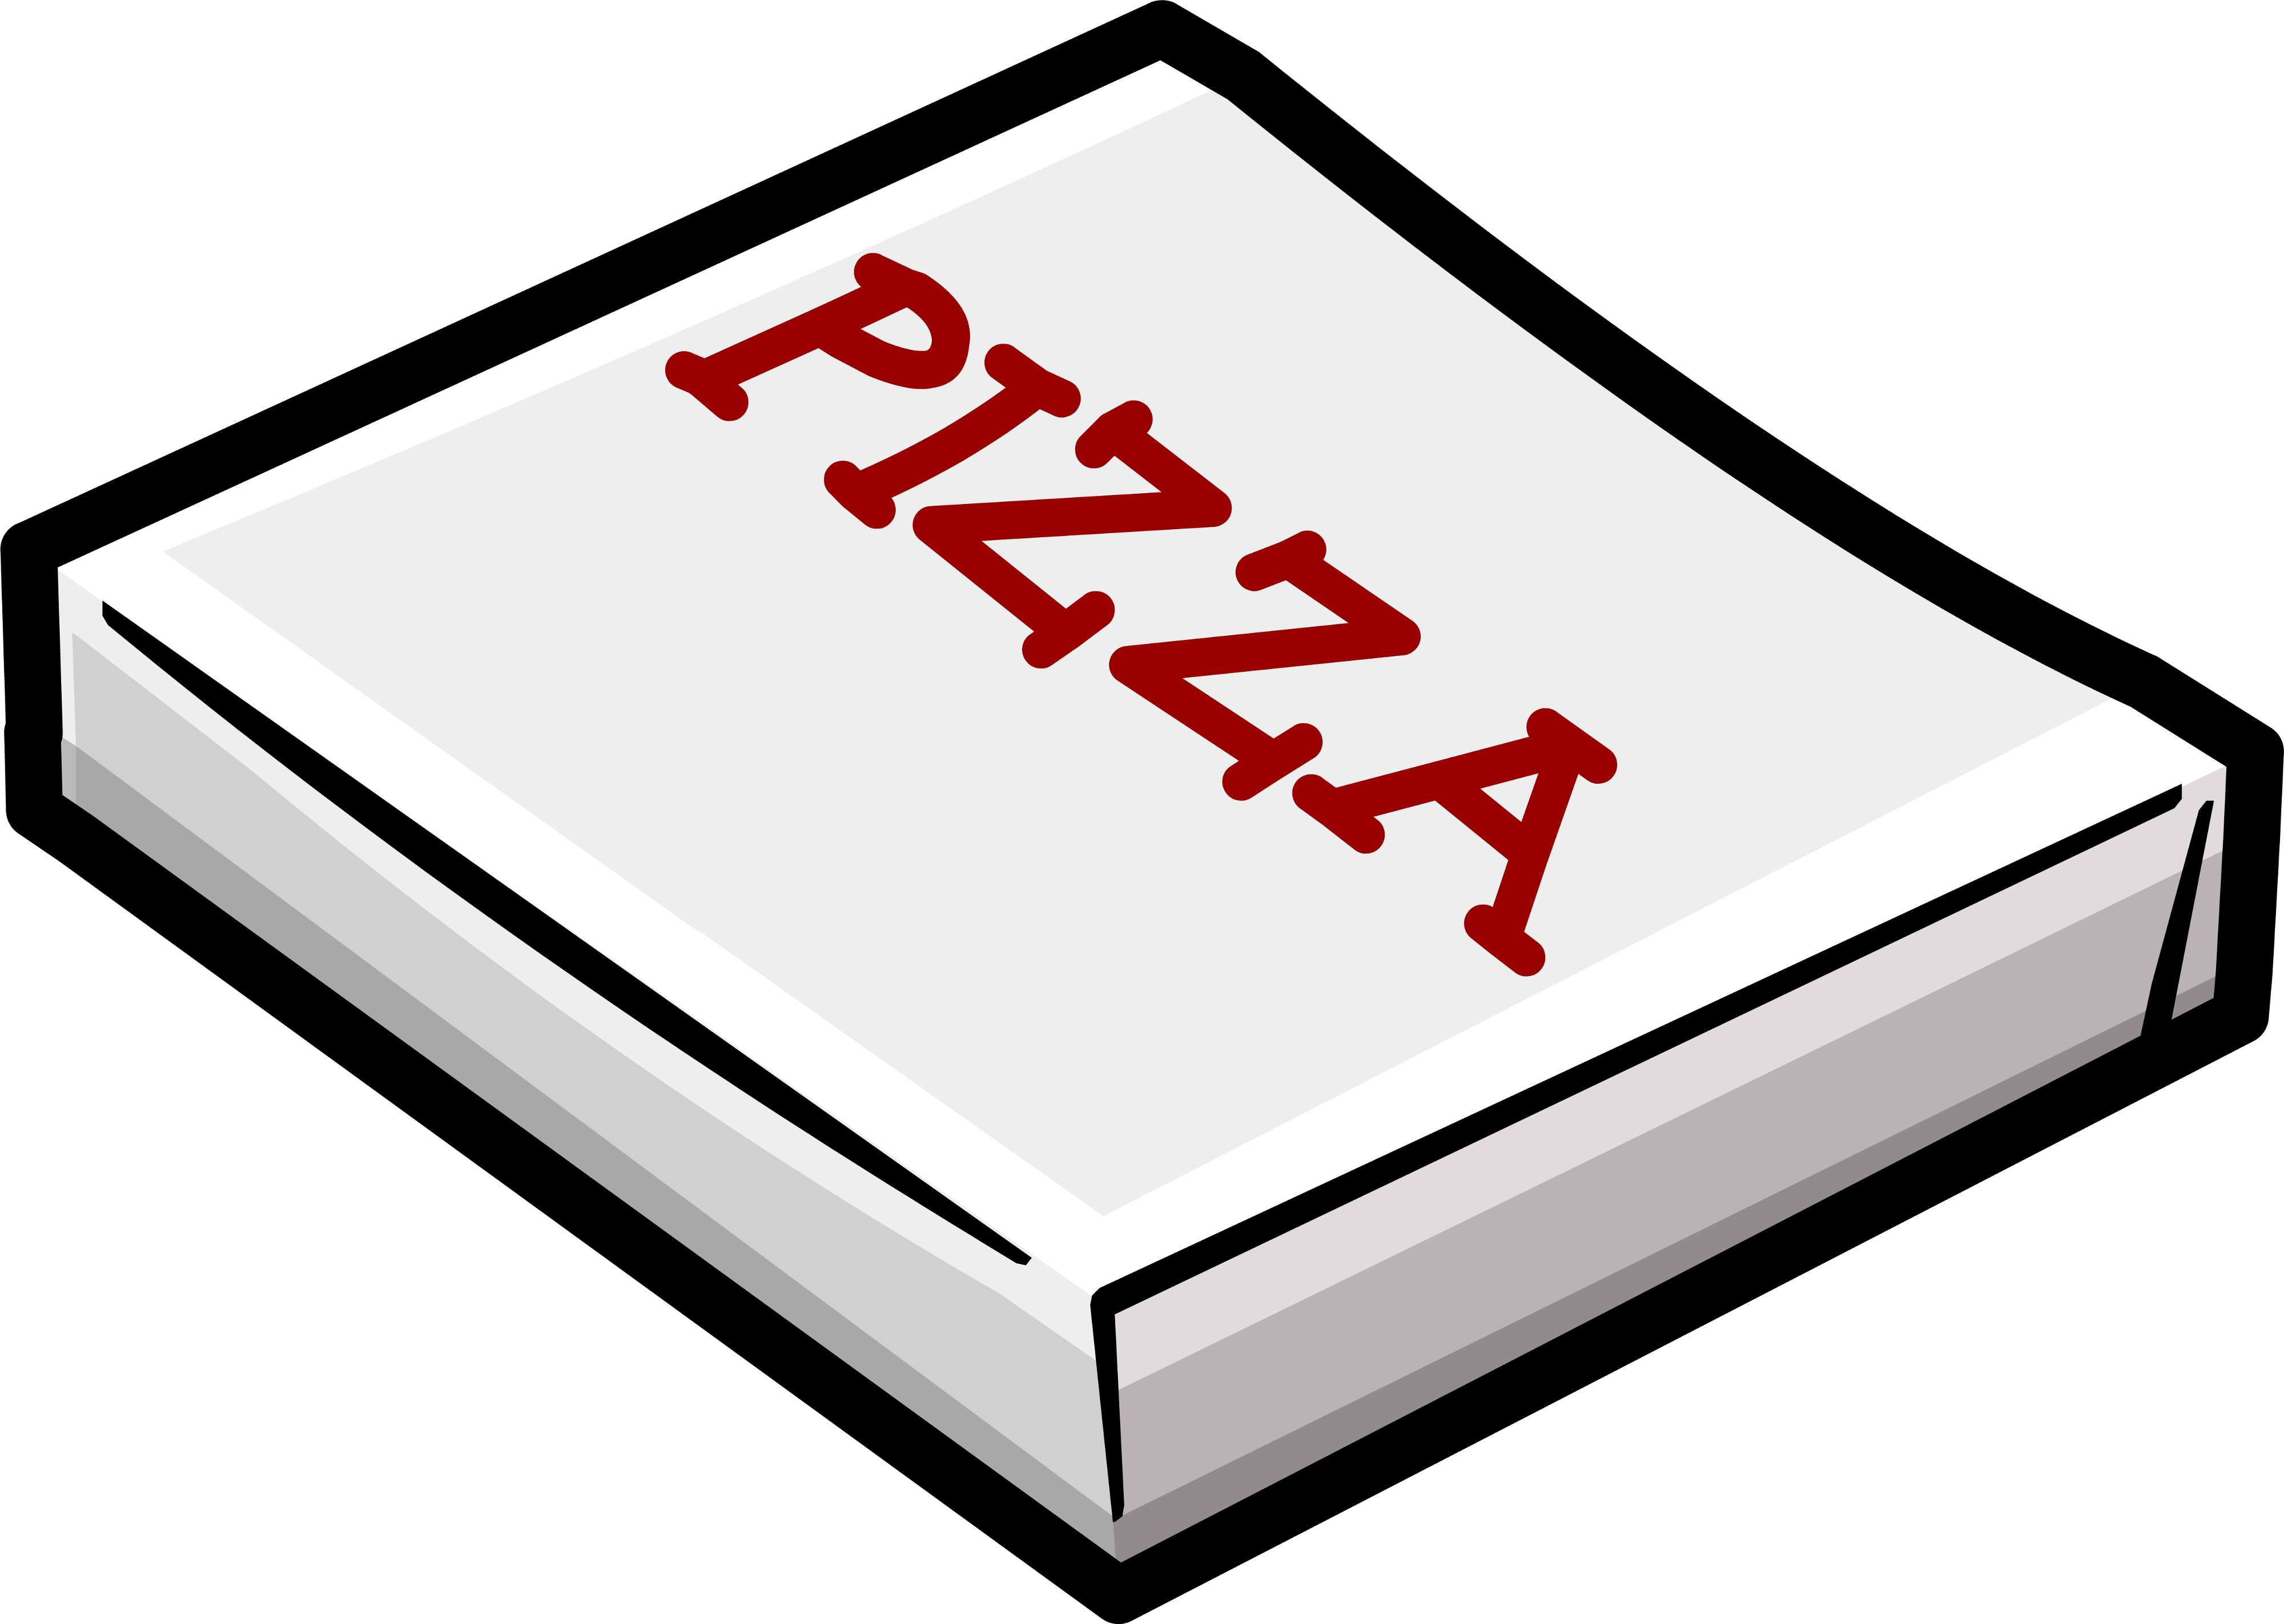 Box of Pizza (Award) - Club Penguin Wiki - The free ...